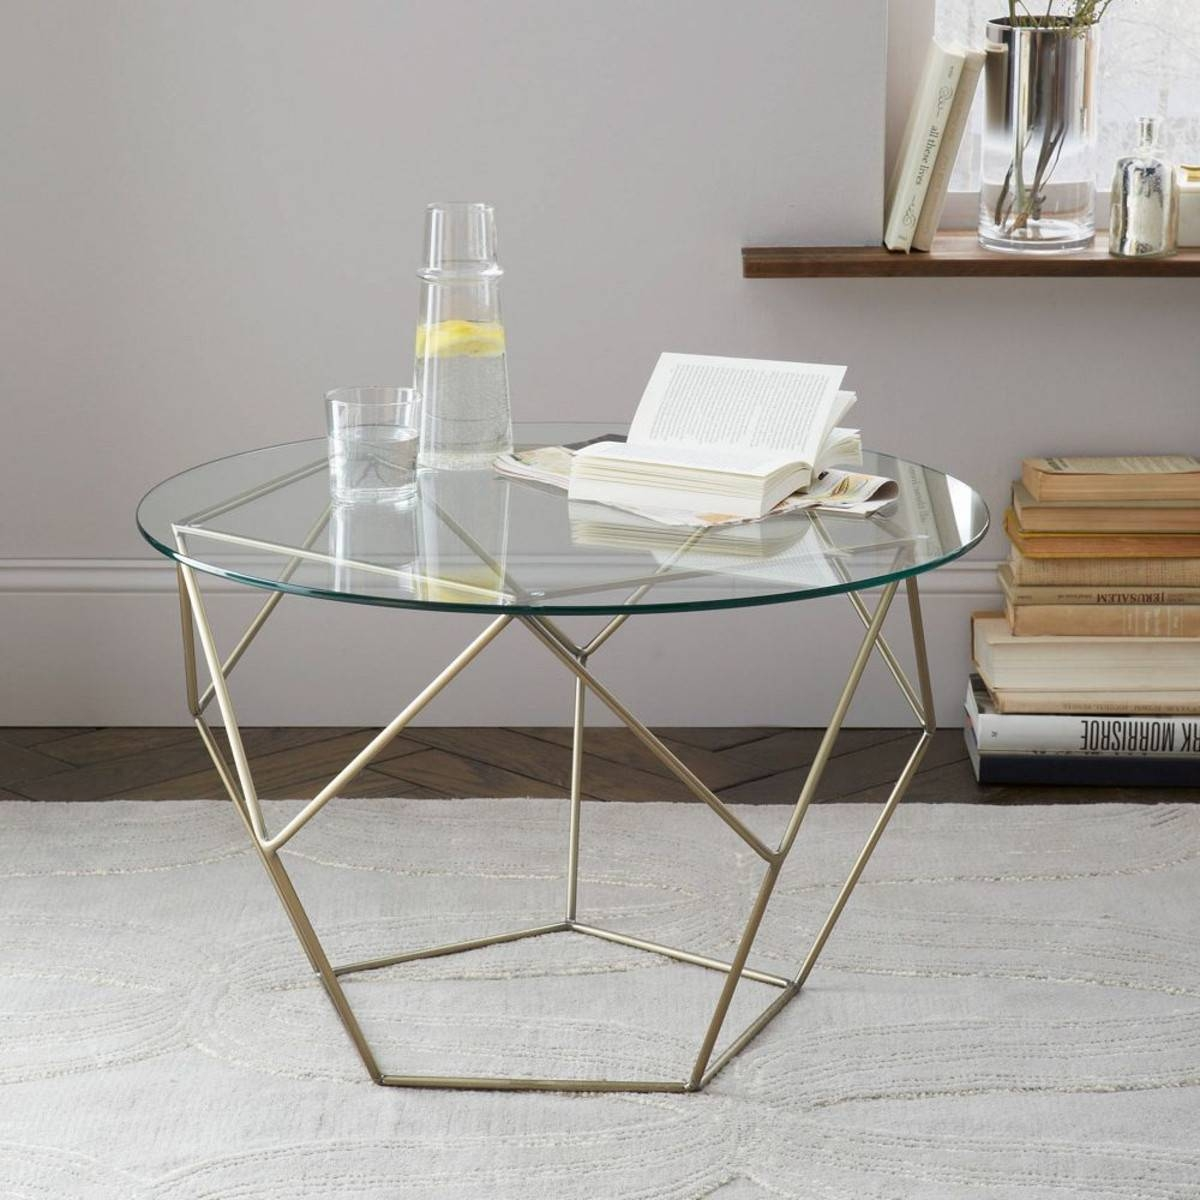 Coffee Table: Enchanting Round Glass Coffee Tables For Sale Round inside Antique Glass Coffee Tables (Image 11 of 30)